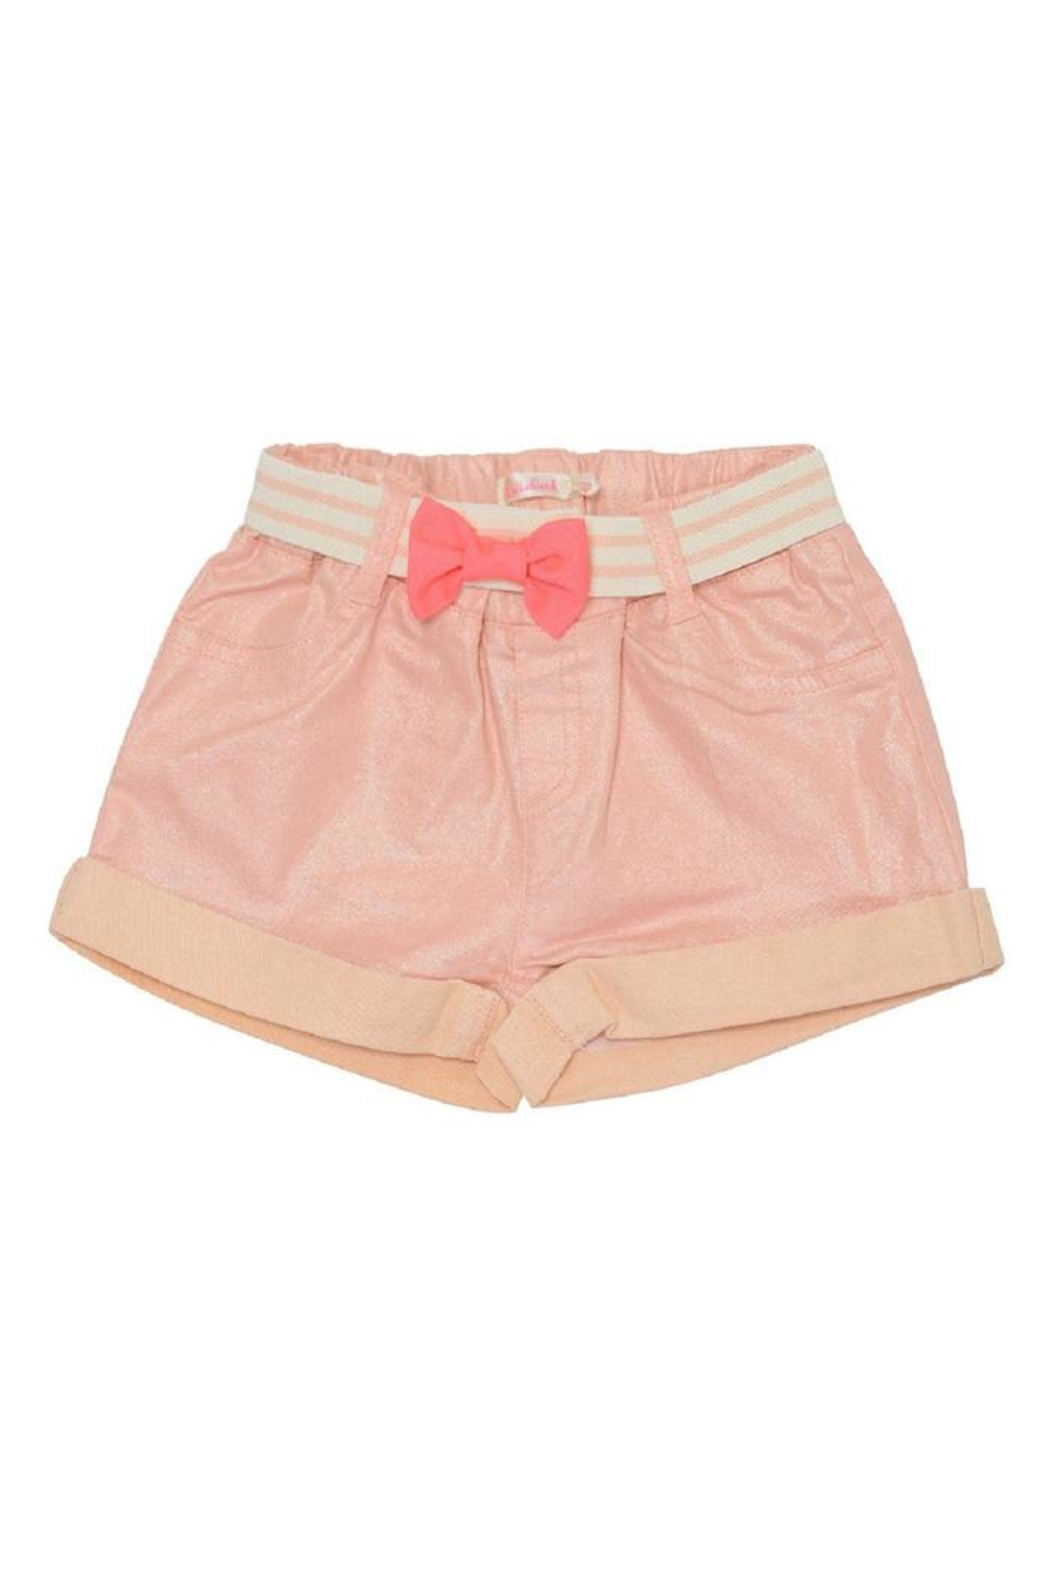 Billieblush Belted Shimmer Short - Main Image